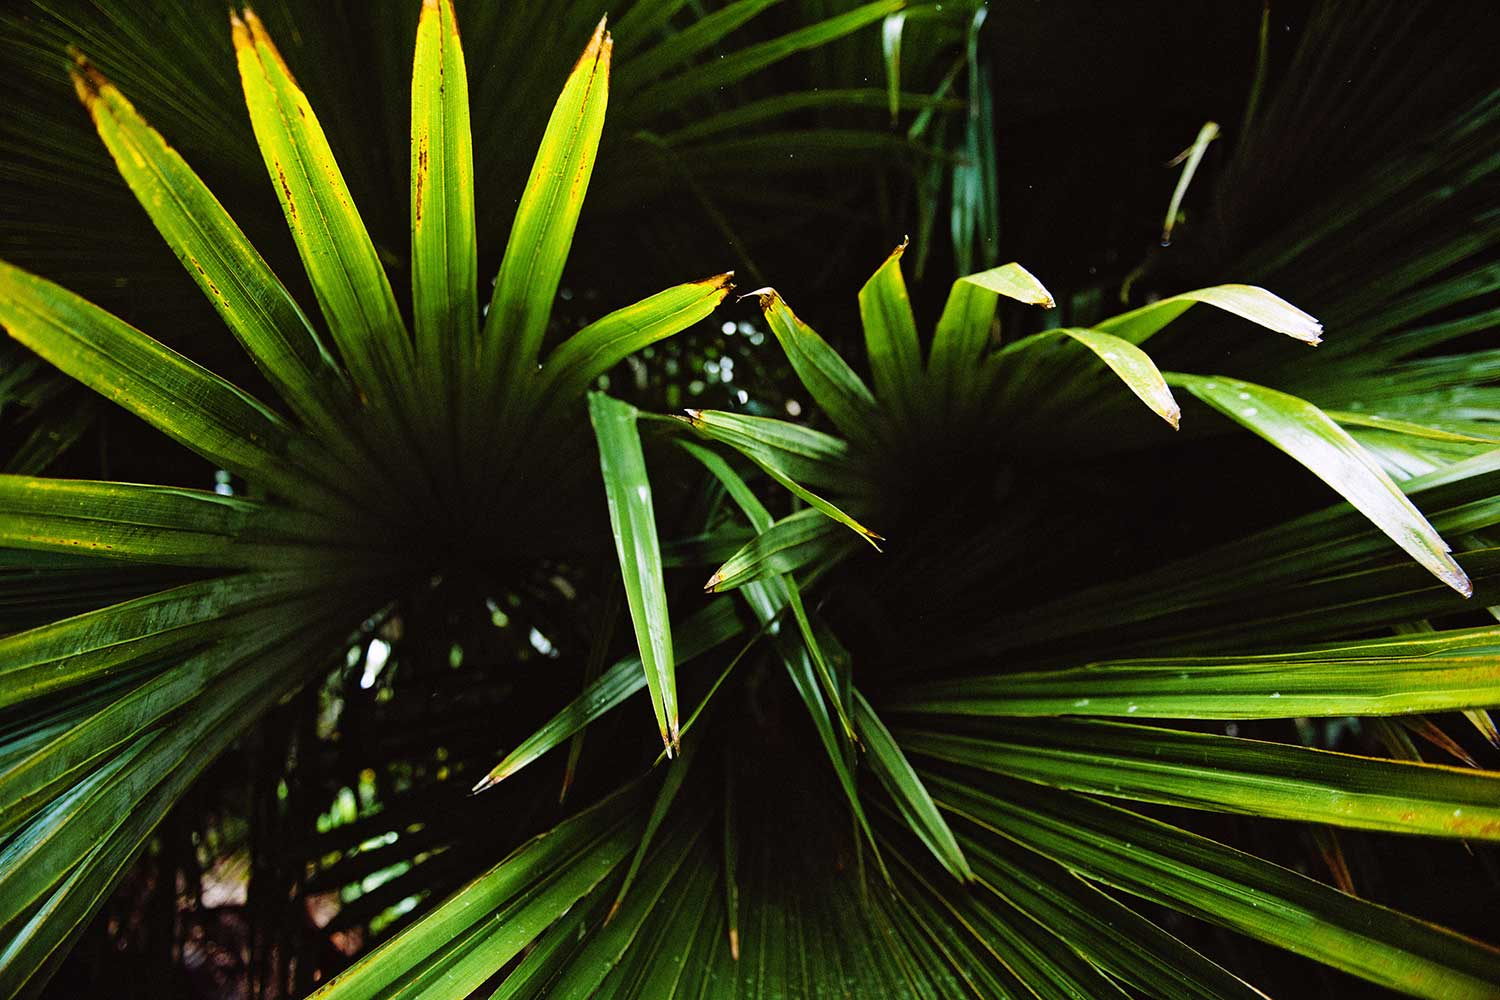 Close up image of palm leaves